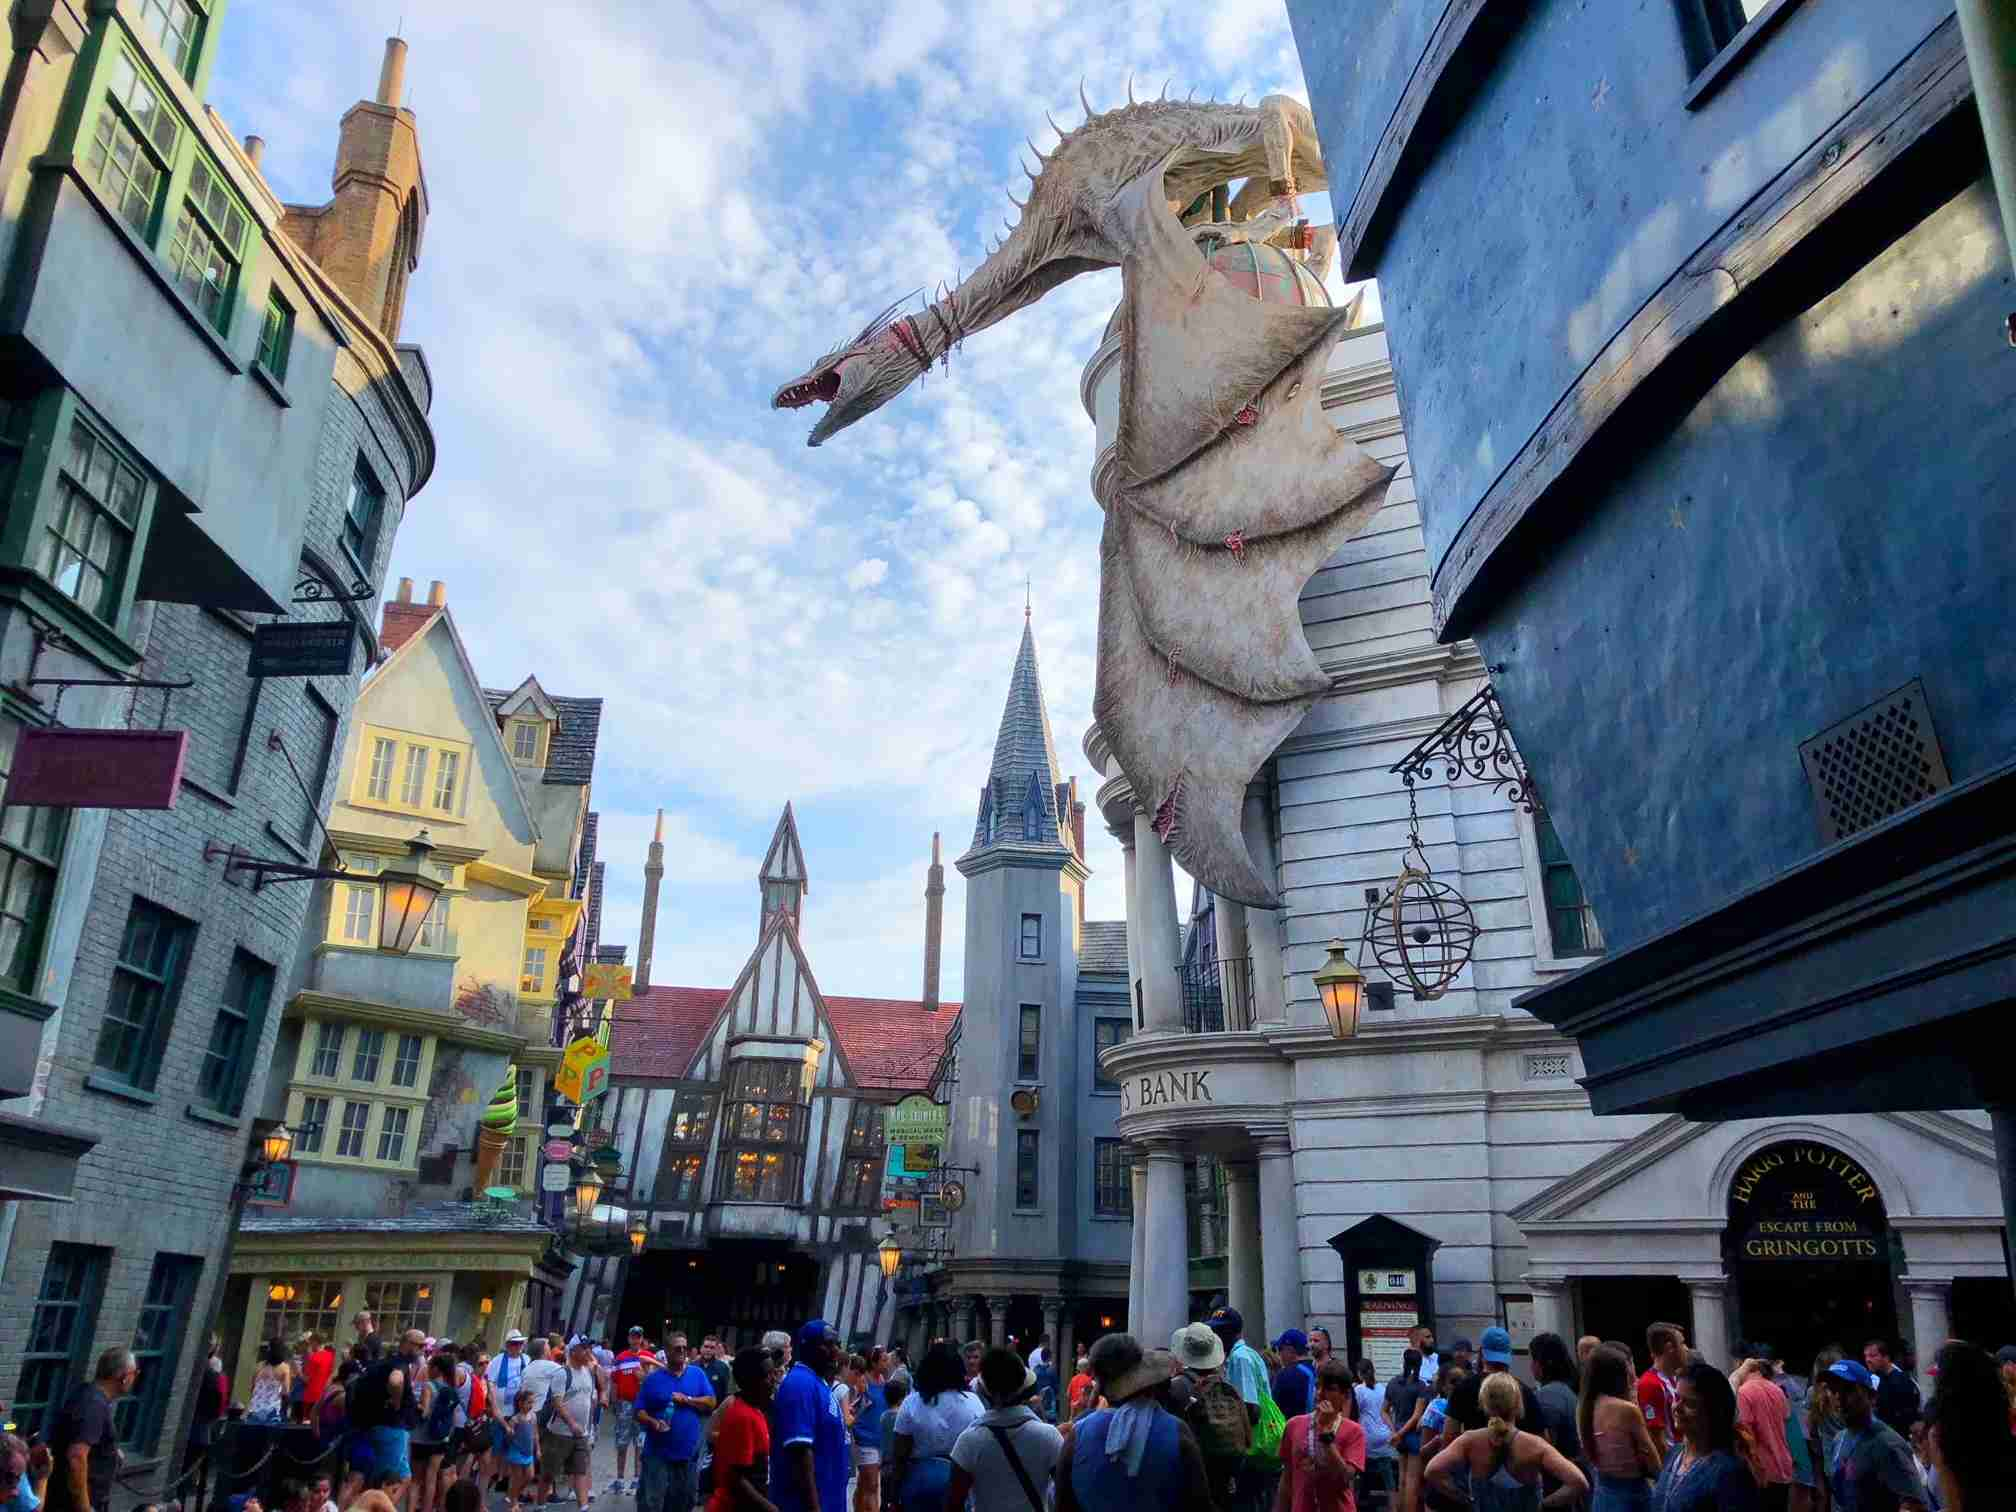 The Wizarding World of Harry Potter at Universal Orlando. (Photo by TPG)